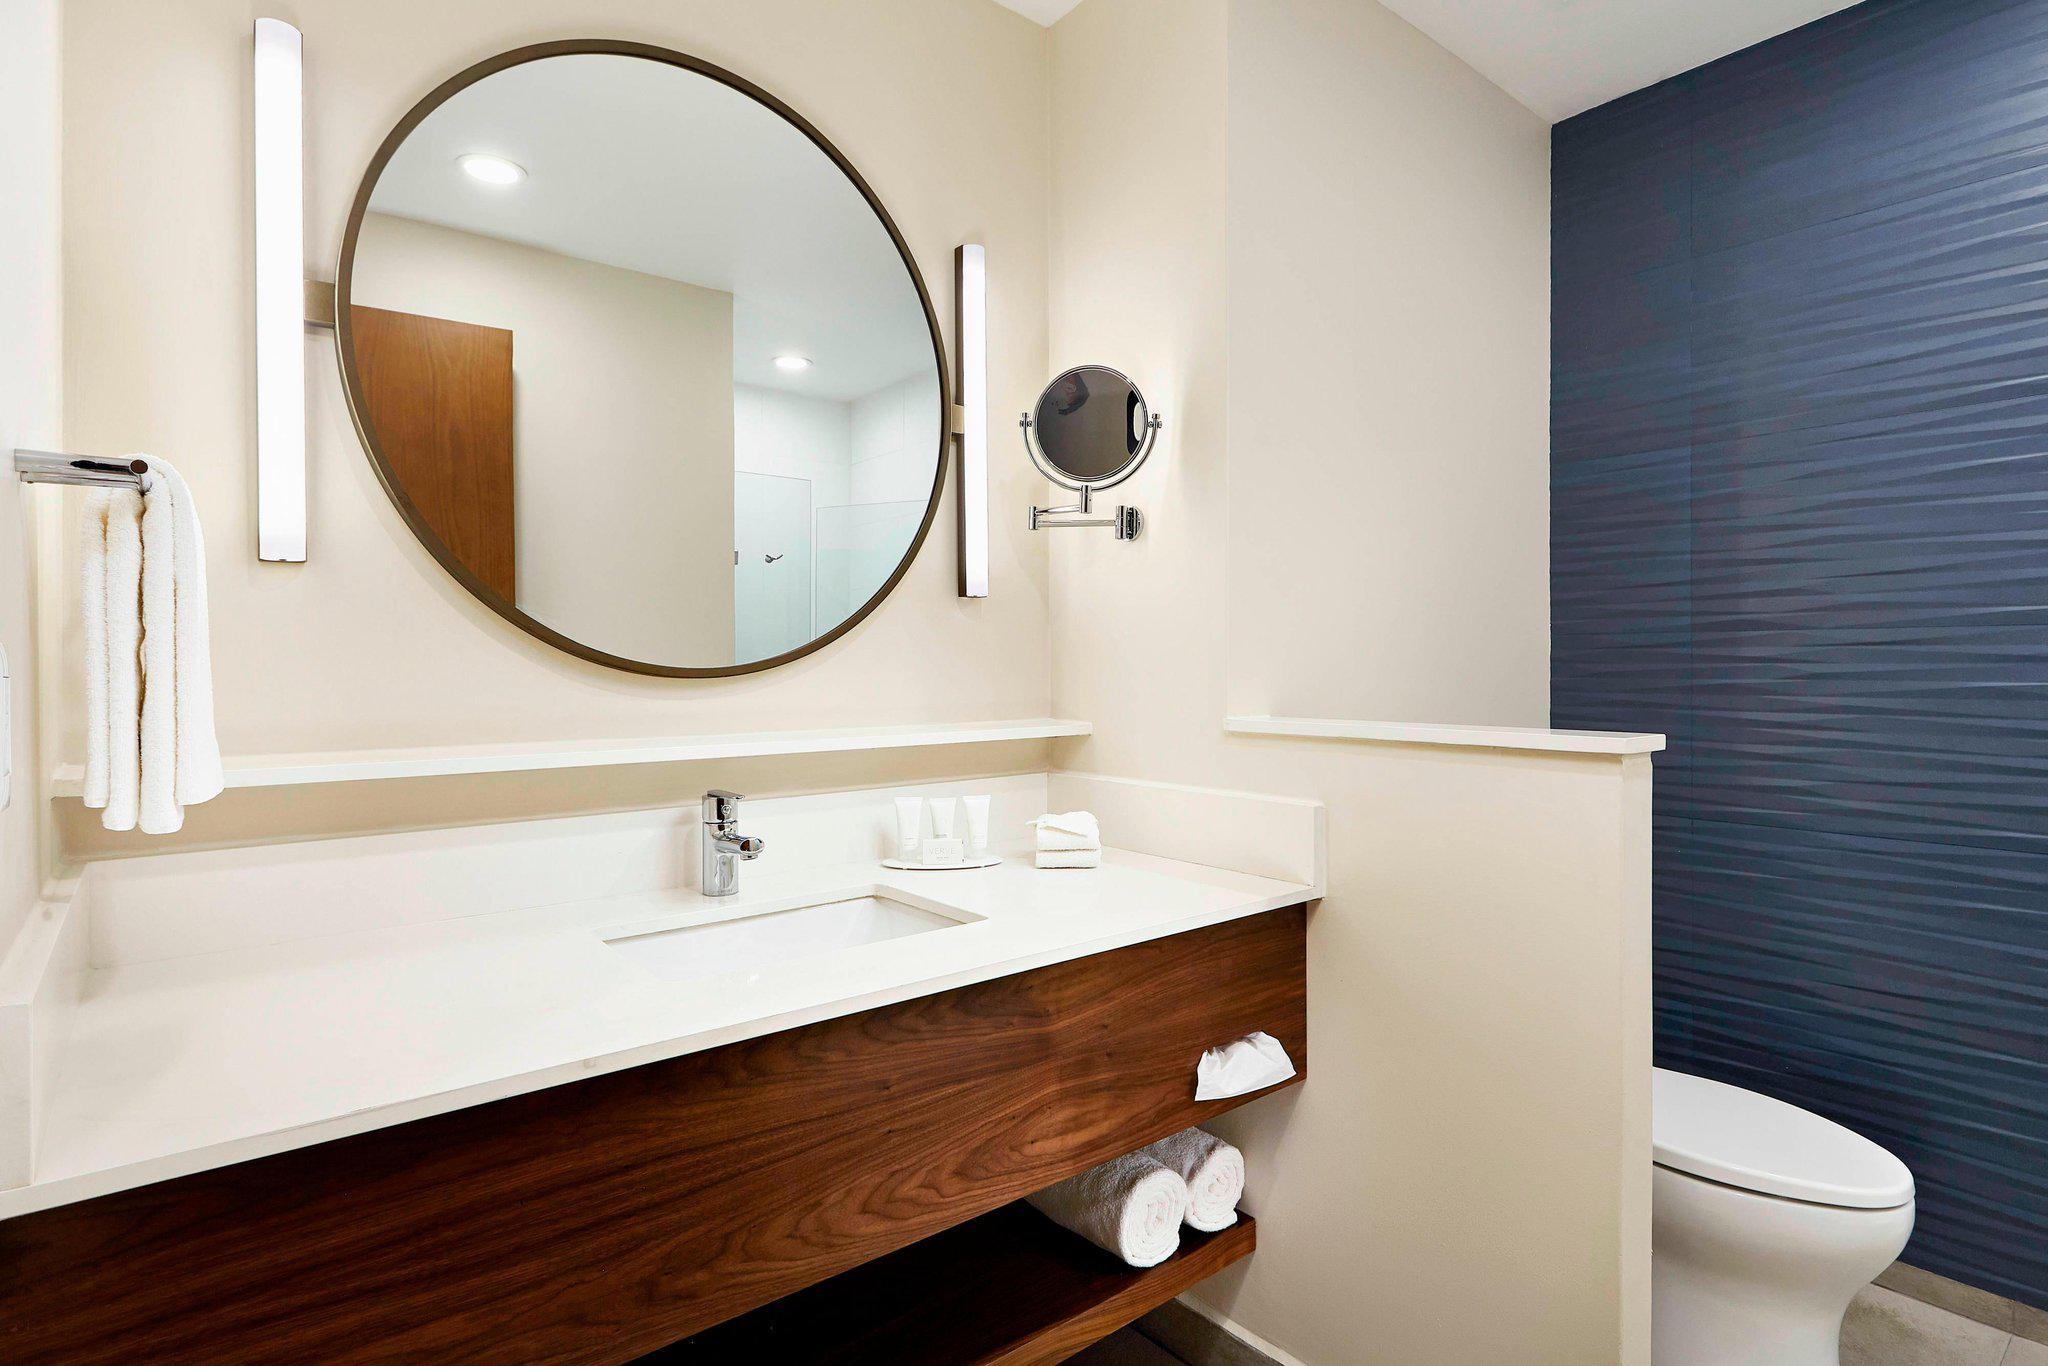 Images Fairfield Inn & Suites by Marriott Cancun Airport